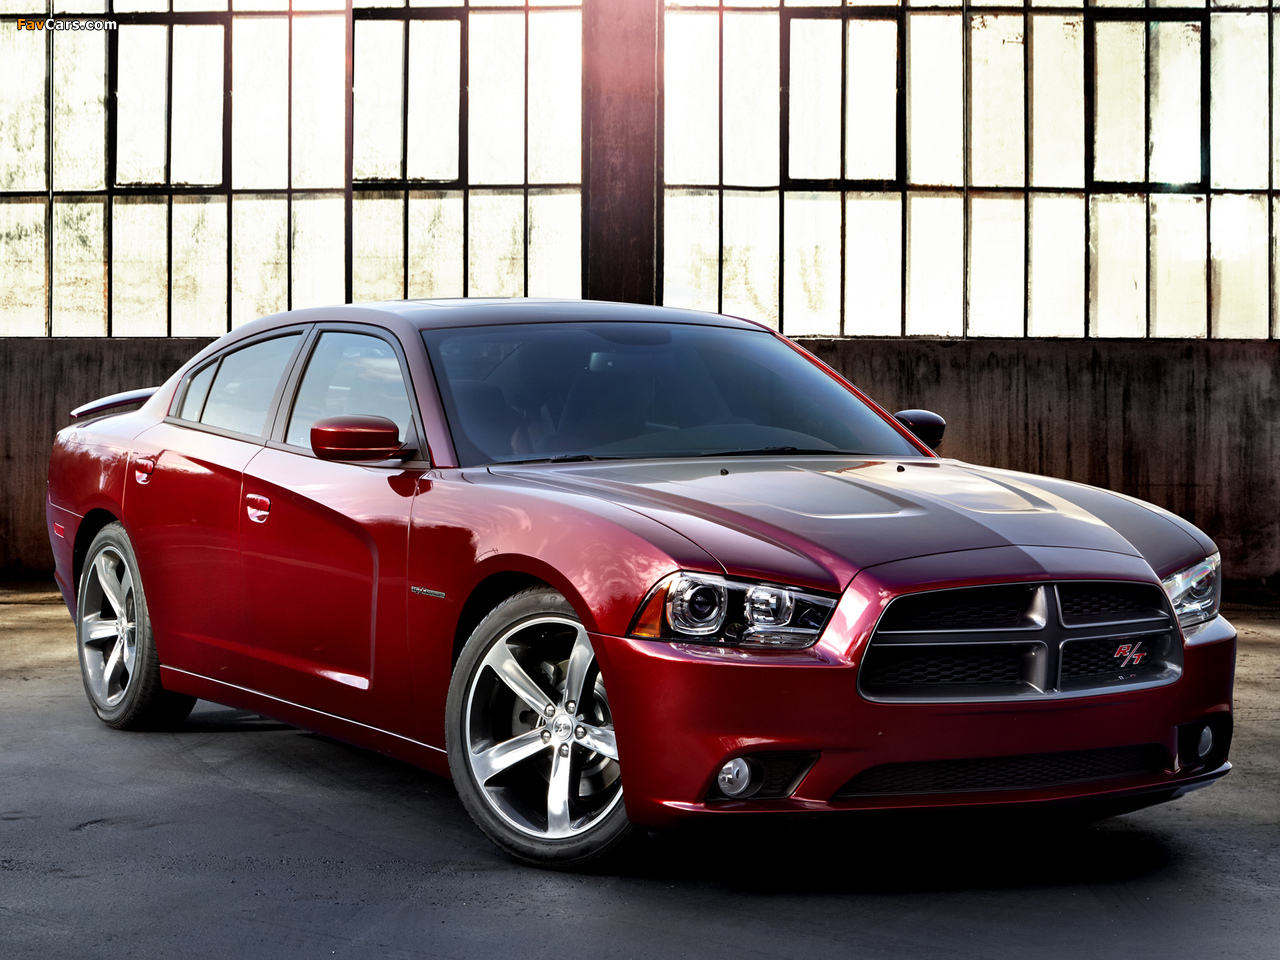 Dodge Charger R/T 100th Anniversary (LD) 2014 pictures (1280 x 960)